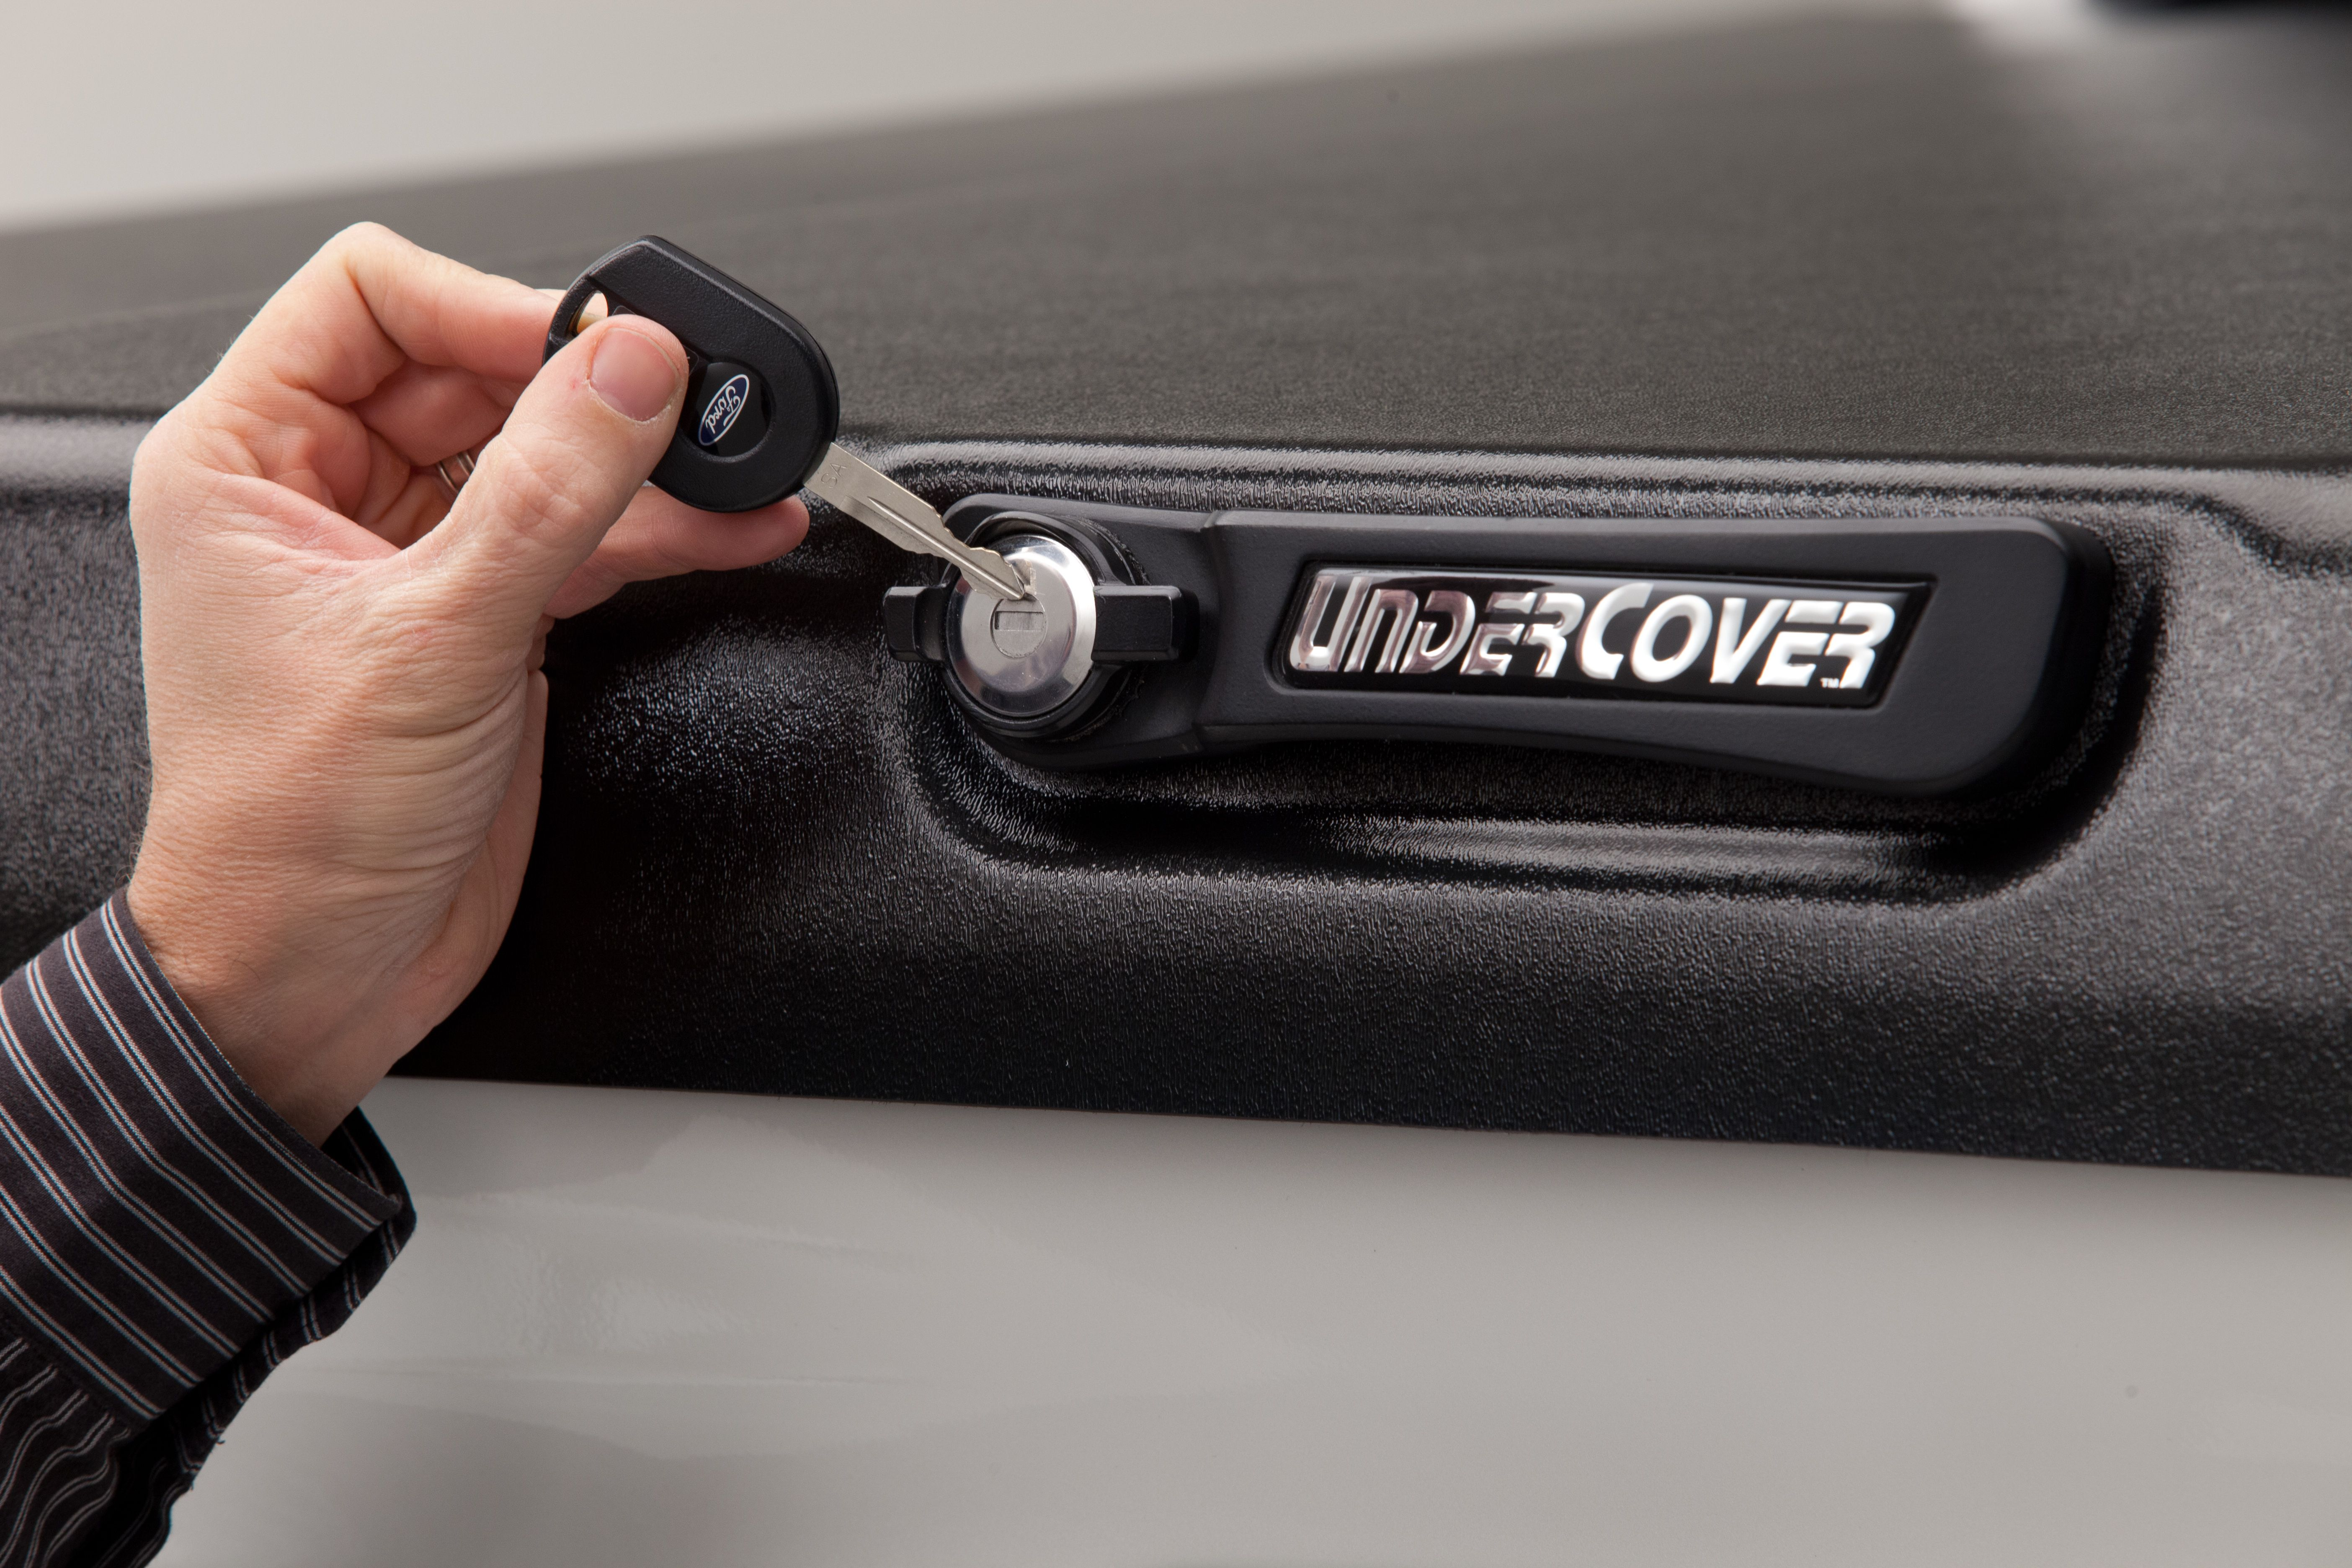 The UnderCover Elite comes standard with our new handle